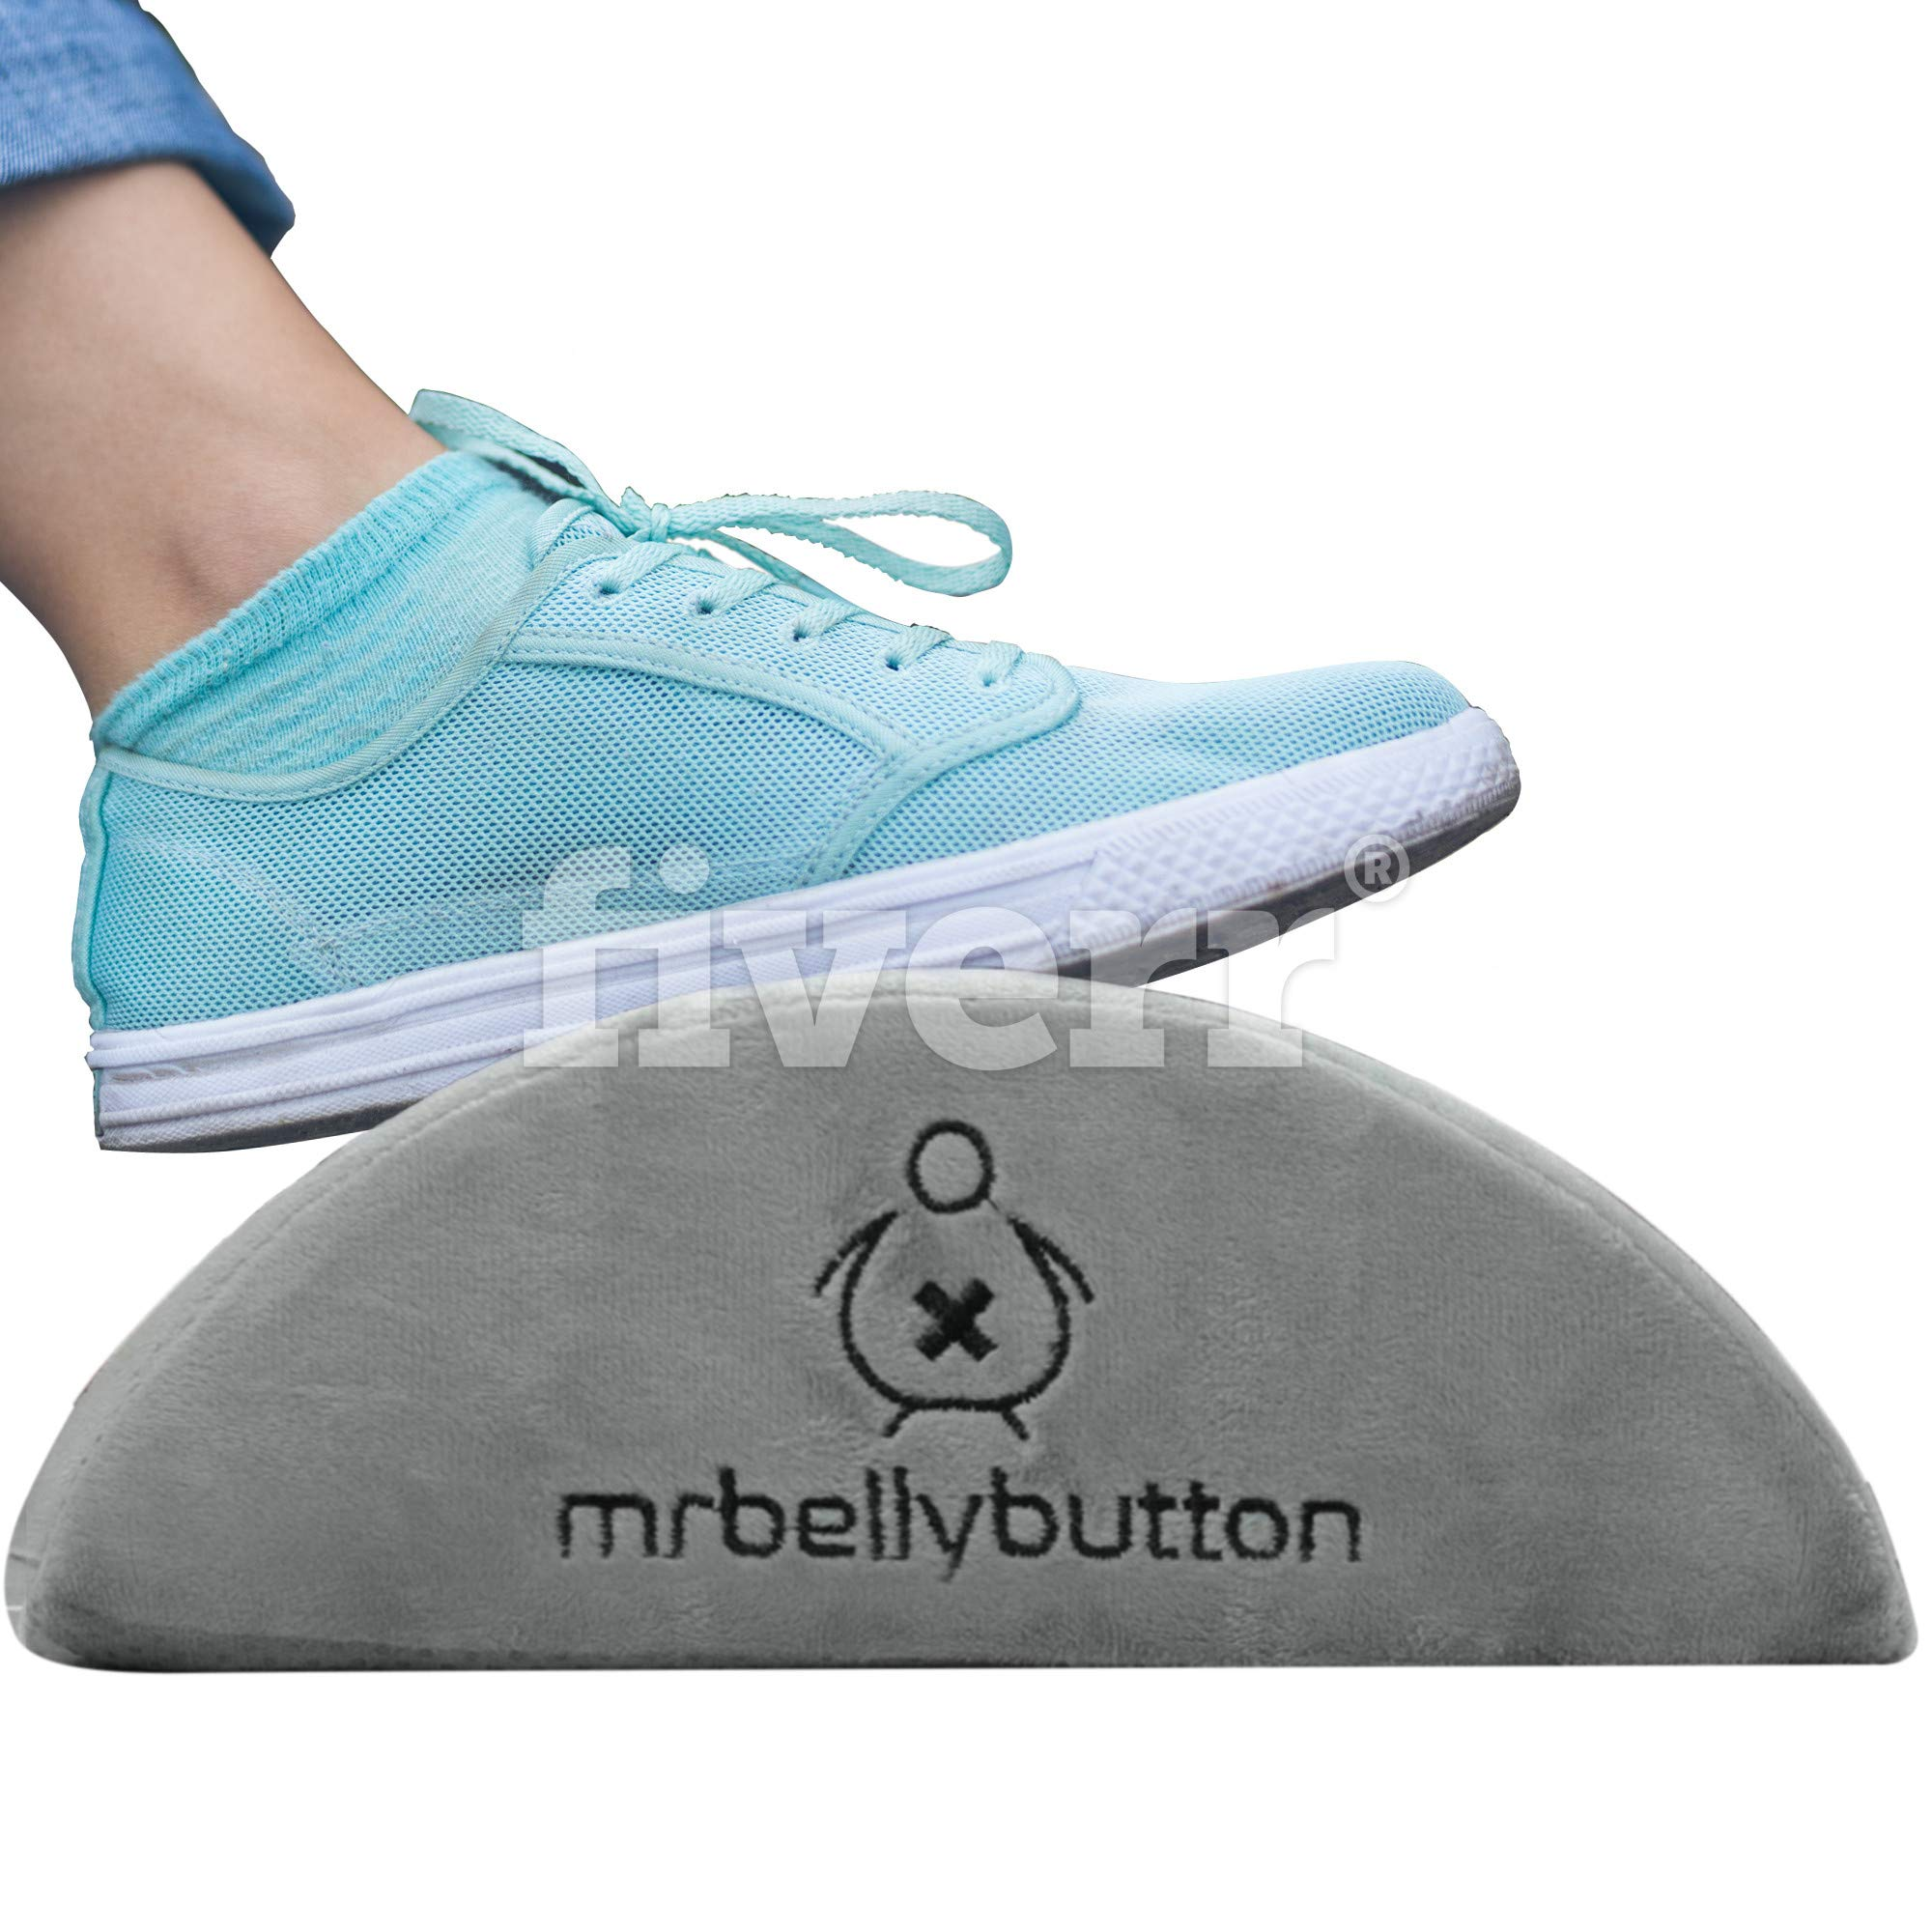 MrBellybutton Foot Rest Cushion Under Desk – Ergonomic Footrest for Desks with Non-Slip Bottom and Washable Cover - Firm and Strong Feet Cushion for Home and Office - 17.5''x12''x4''